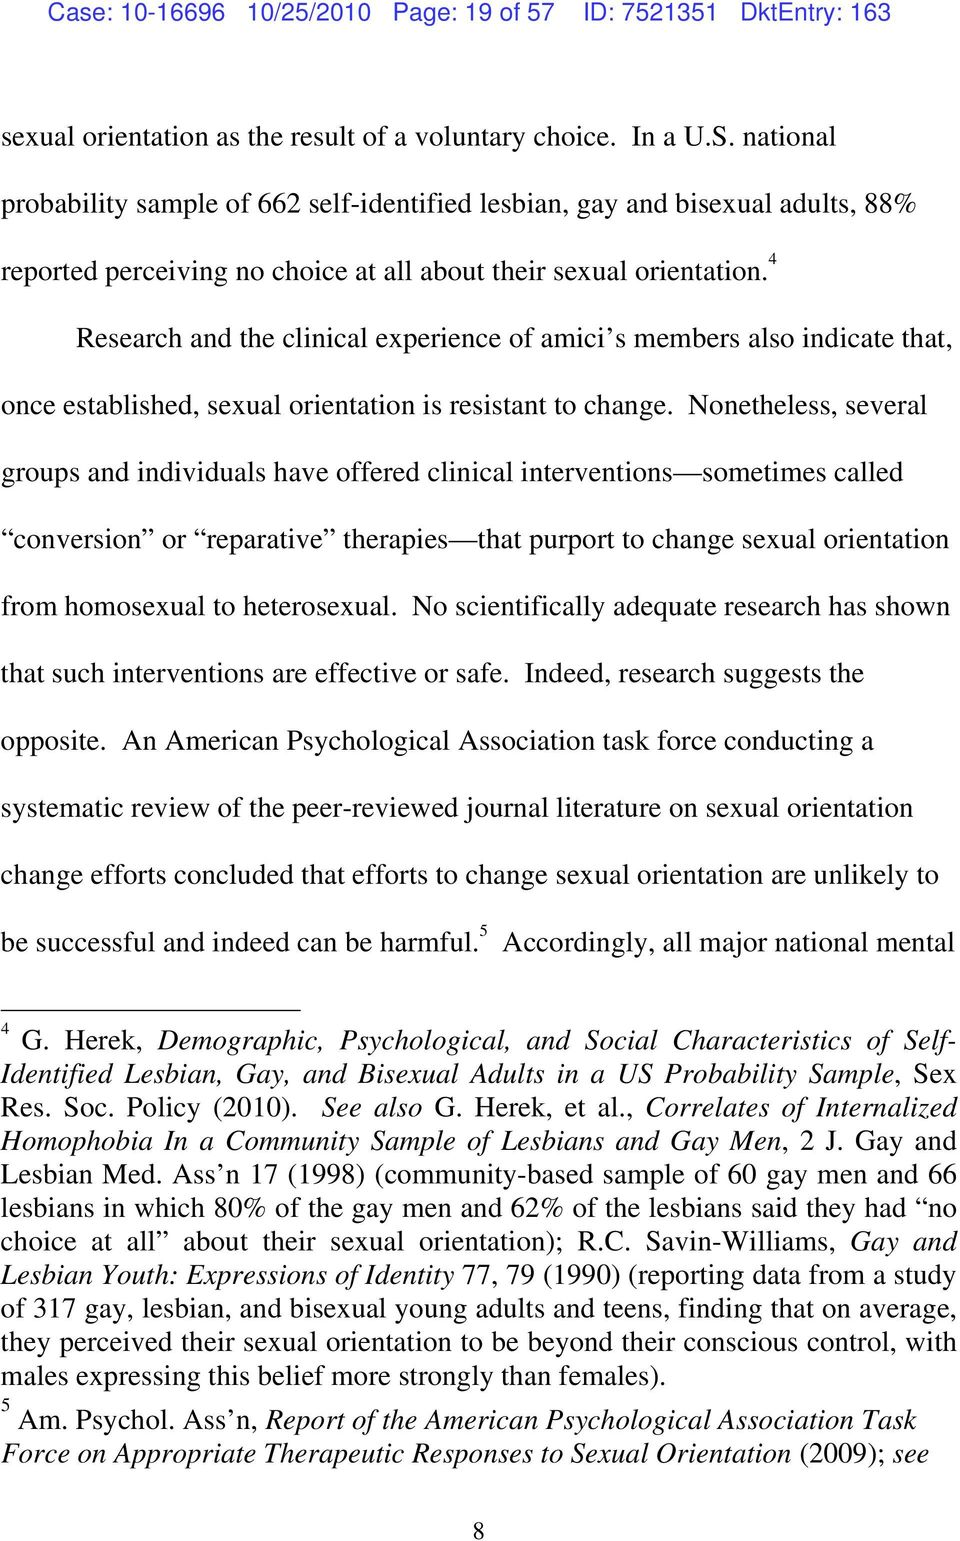 4 Research and the clinical experience of amici s members also indicate that, once established, sexual orientation is resistant to change.